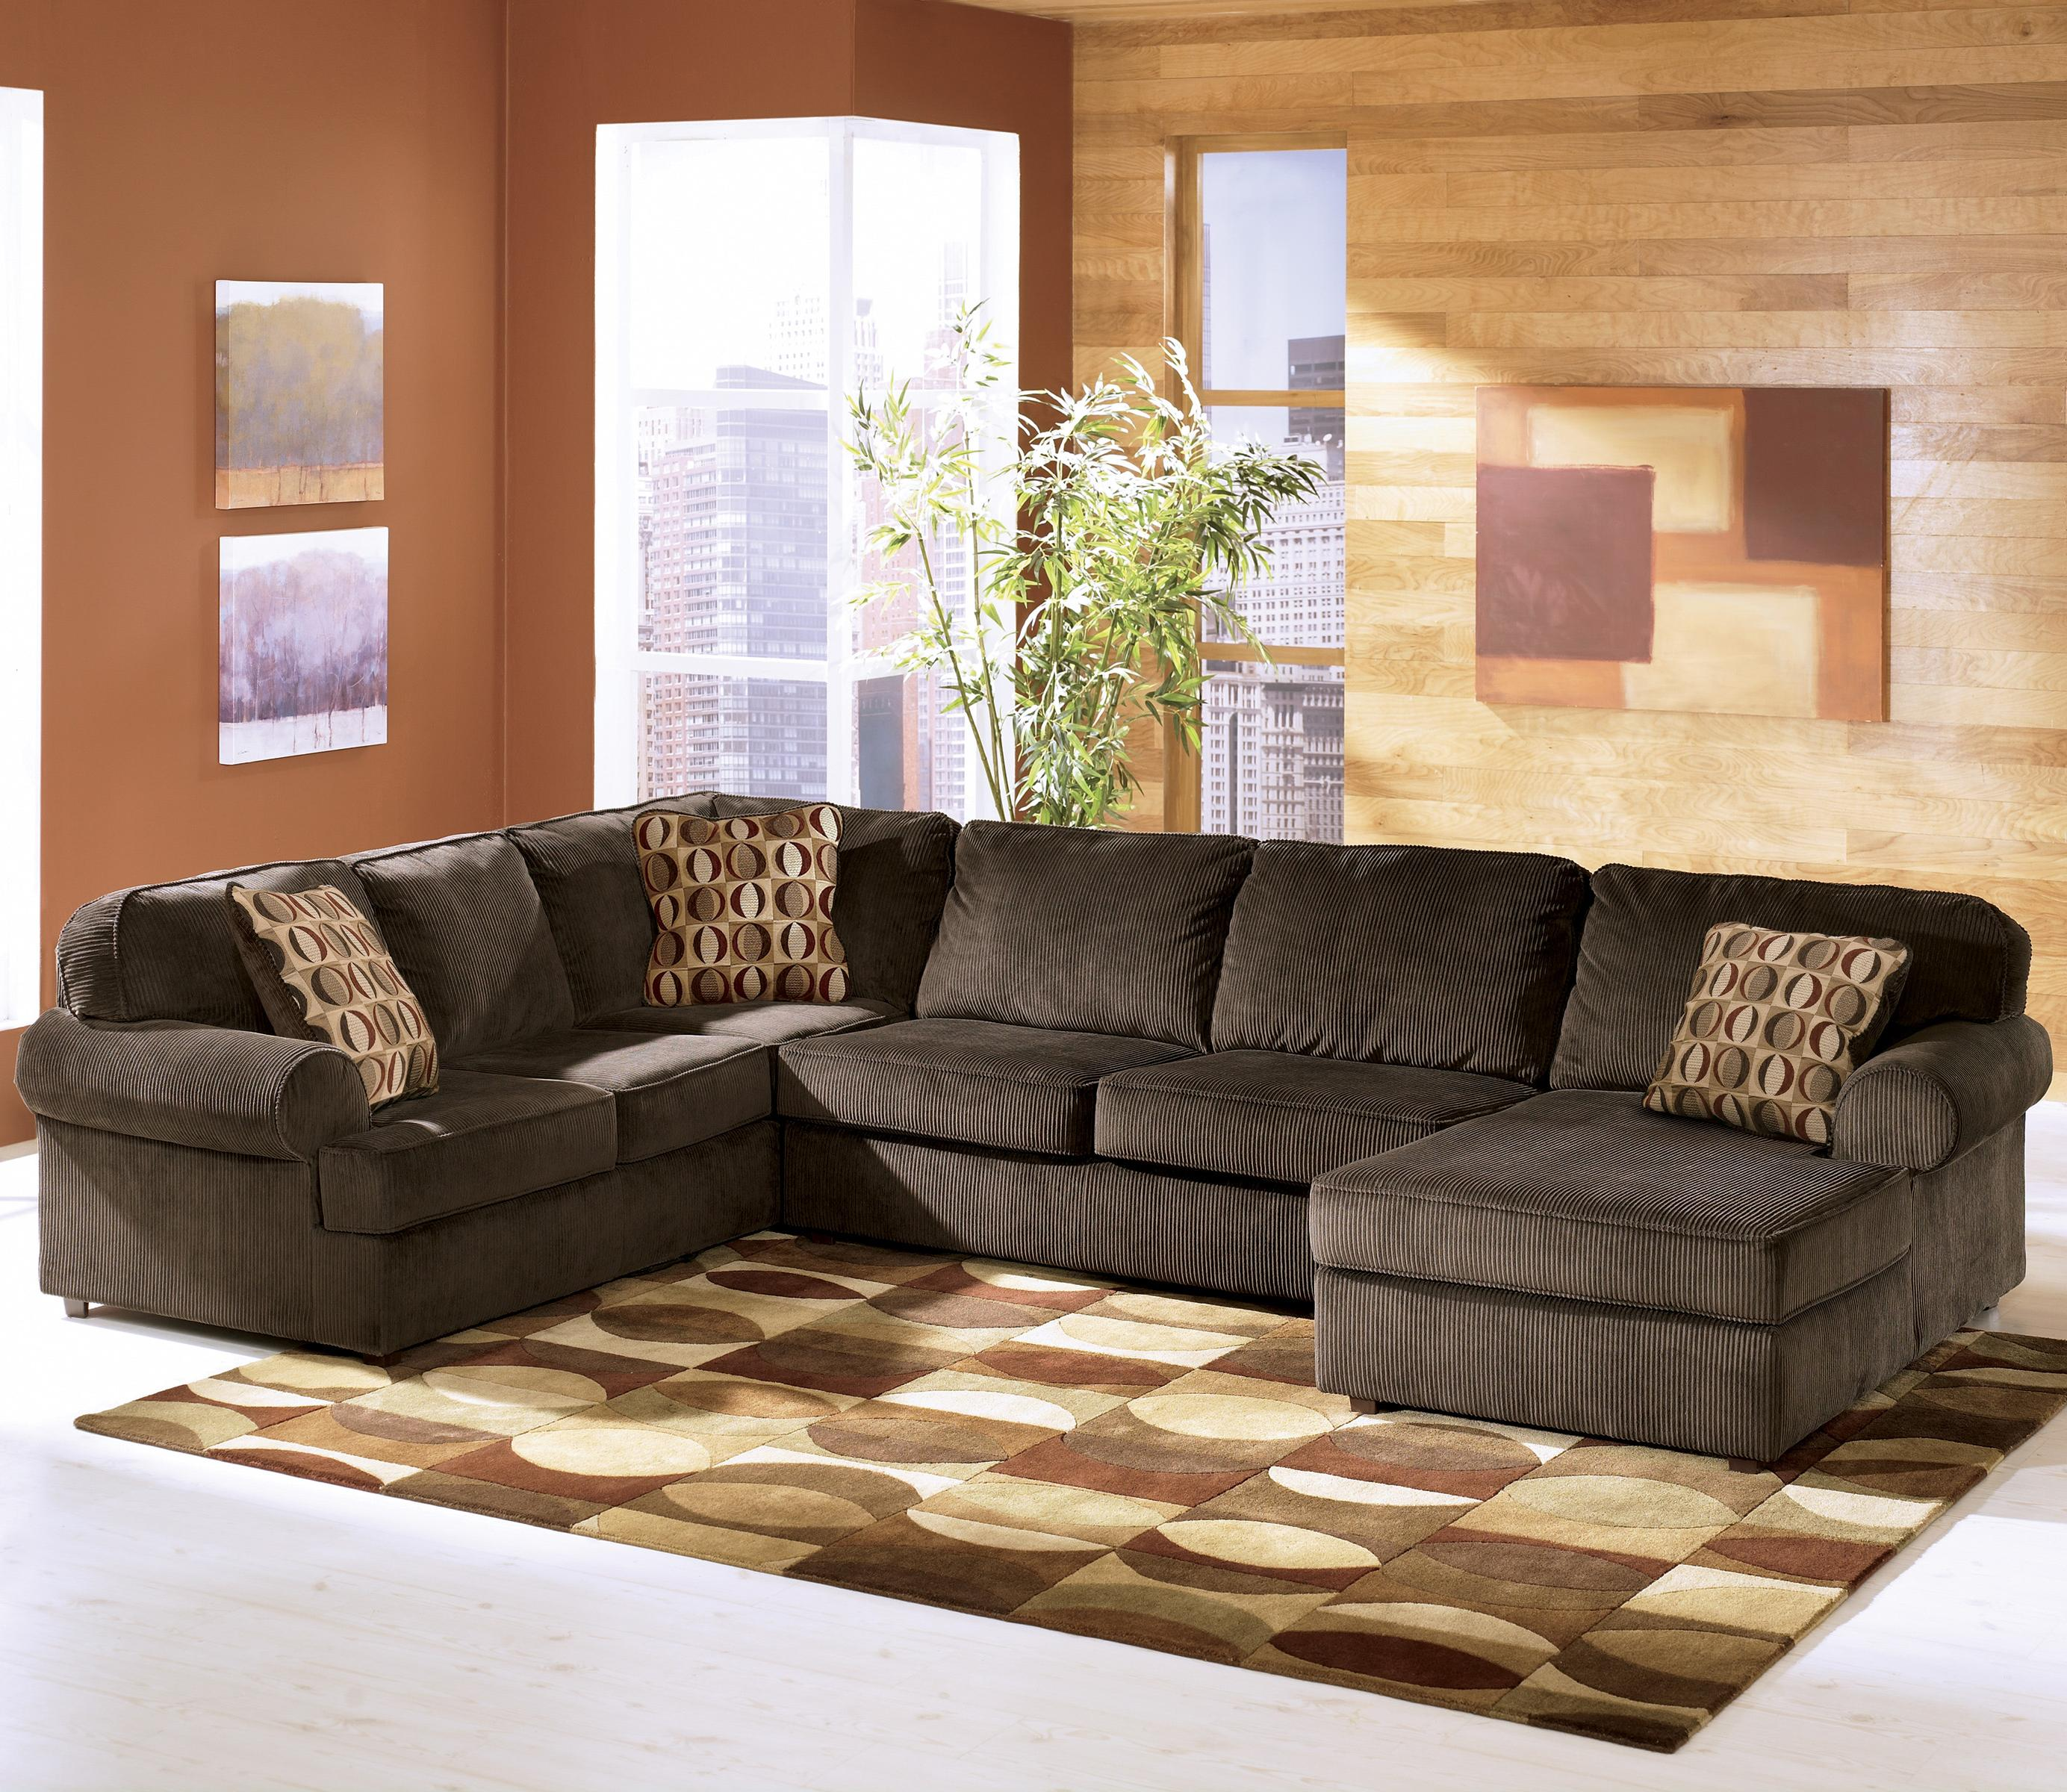 Vista - Chocolate 3-Piece Sectional with Right Chaise by Ashley Furniture at Lapeer Furniture & Mattress Center